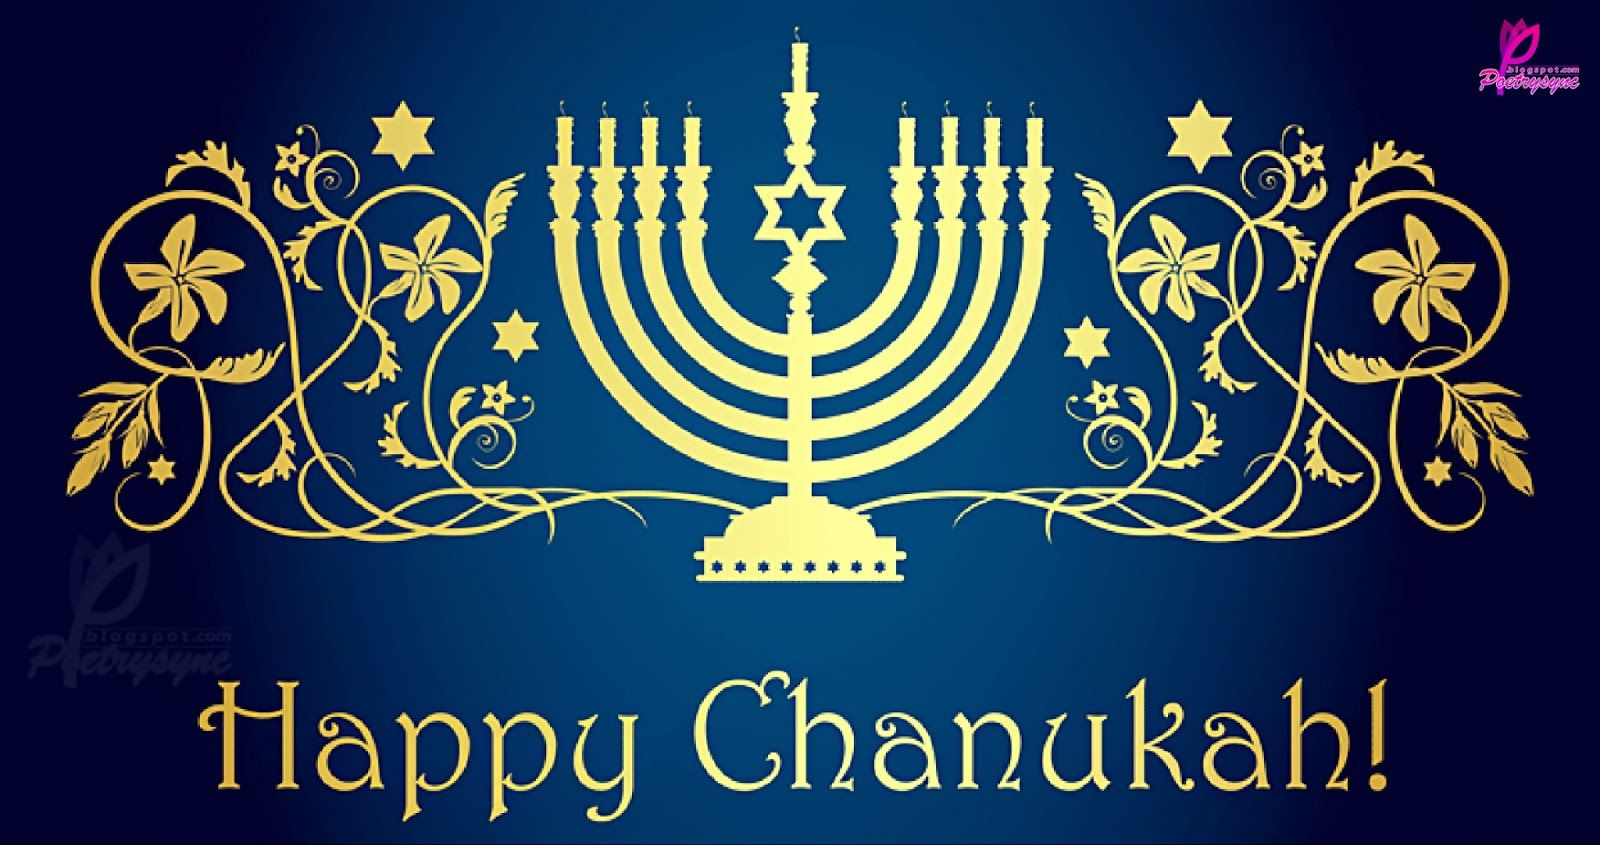 happy hanukkah pictures  photos  and images for facebook first day of spring clip art religious free first day of spring clip art images